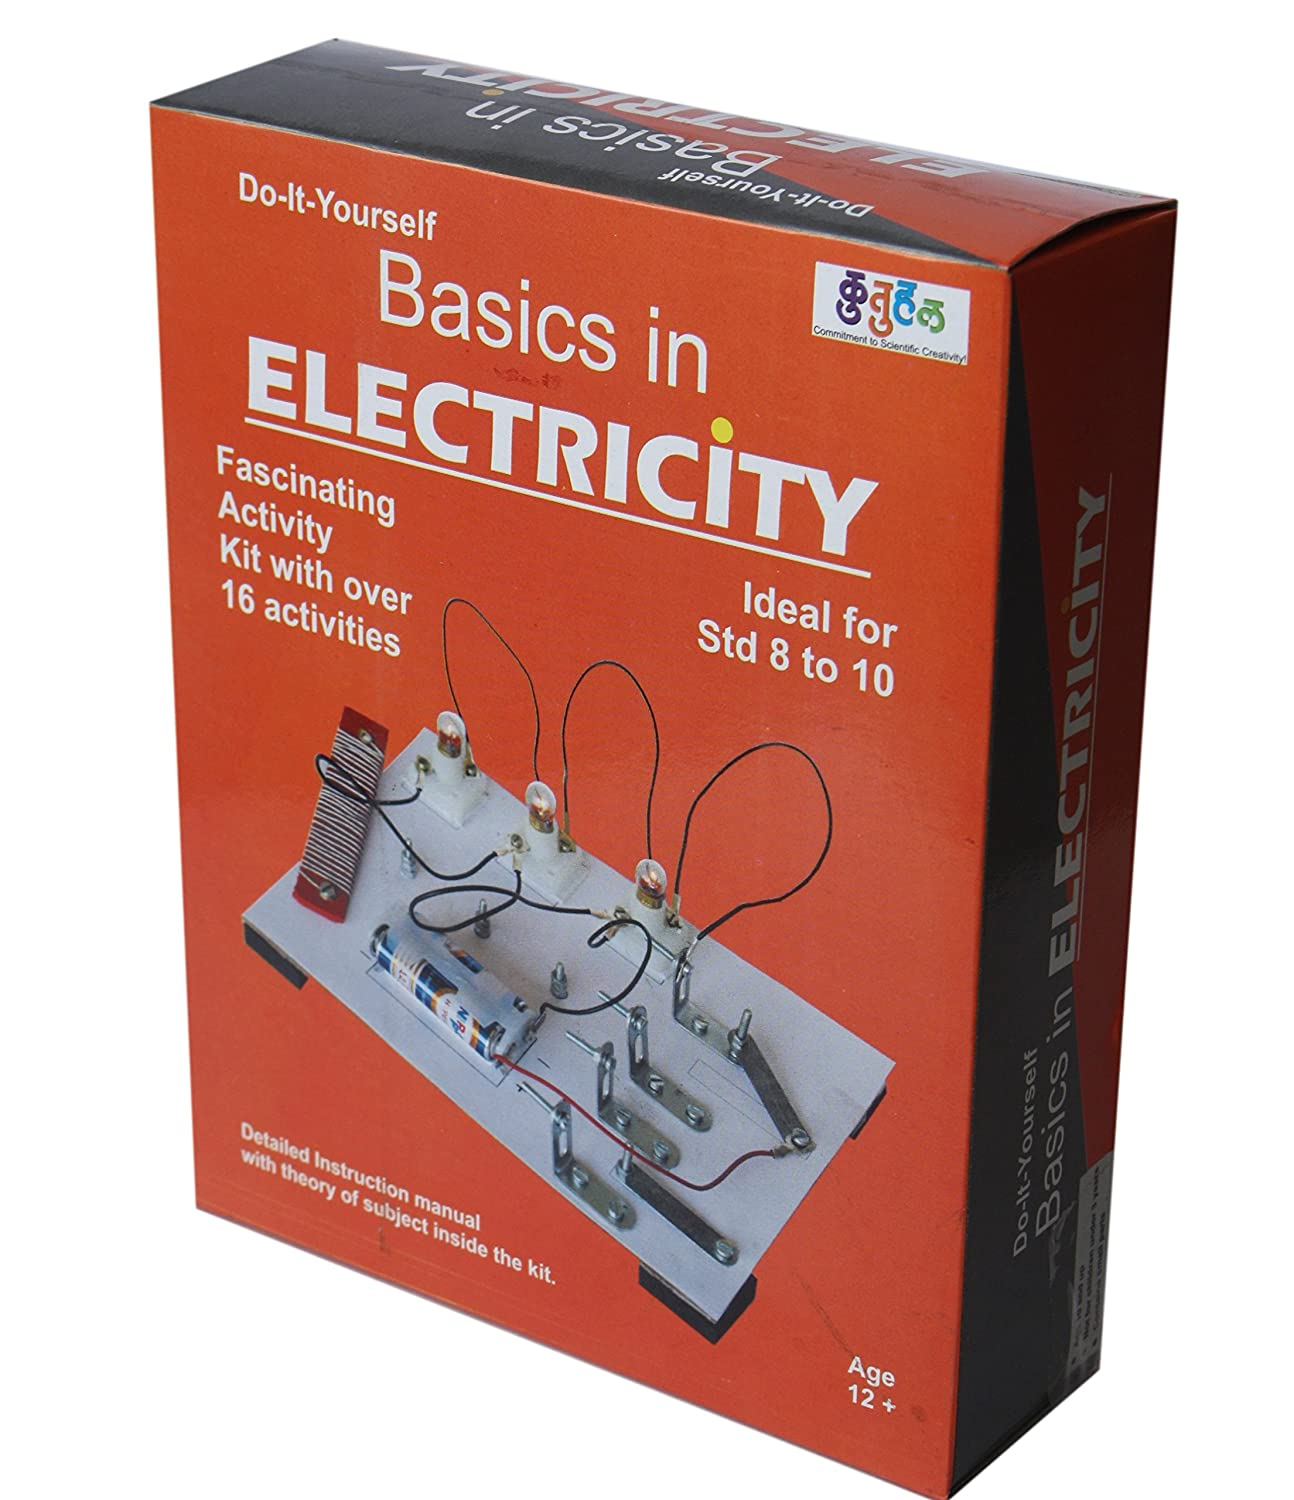 Buy kutuhal basics in electricity do it yourself working model buy kutuhal basics in electricity do it yourself working model online at low prices in india amazon solutioingenieria Images